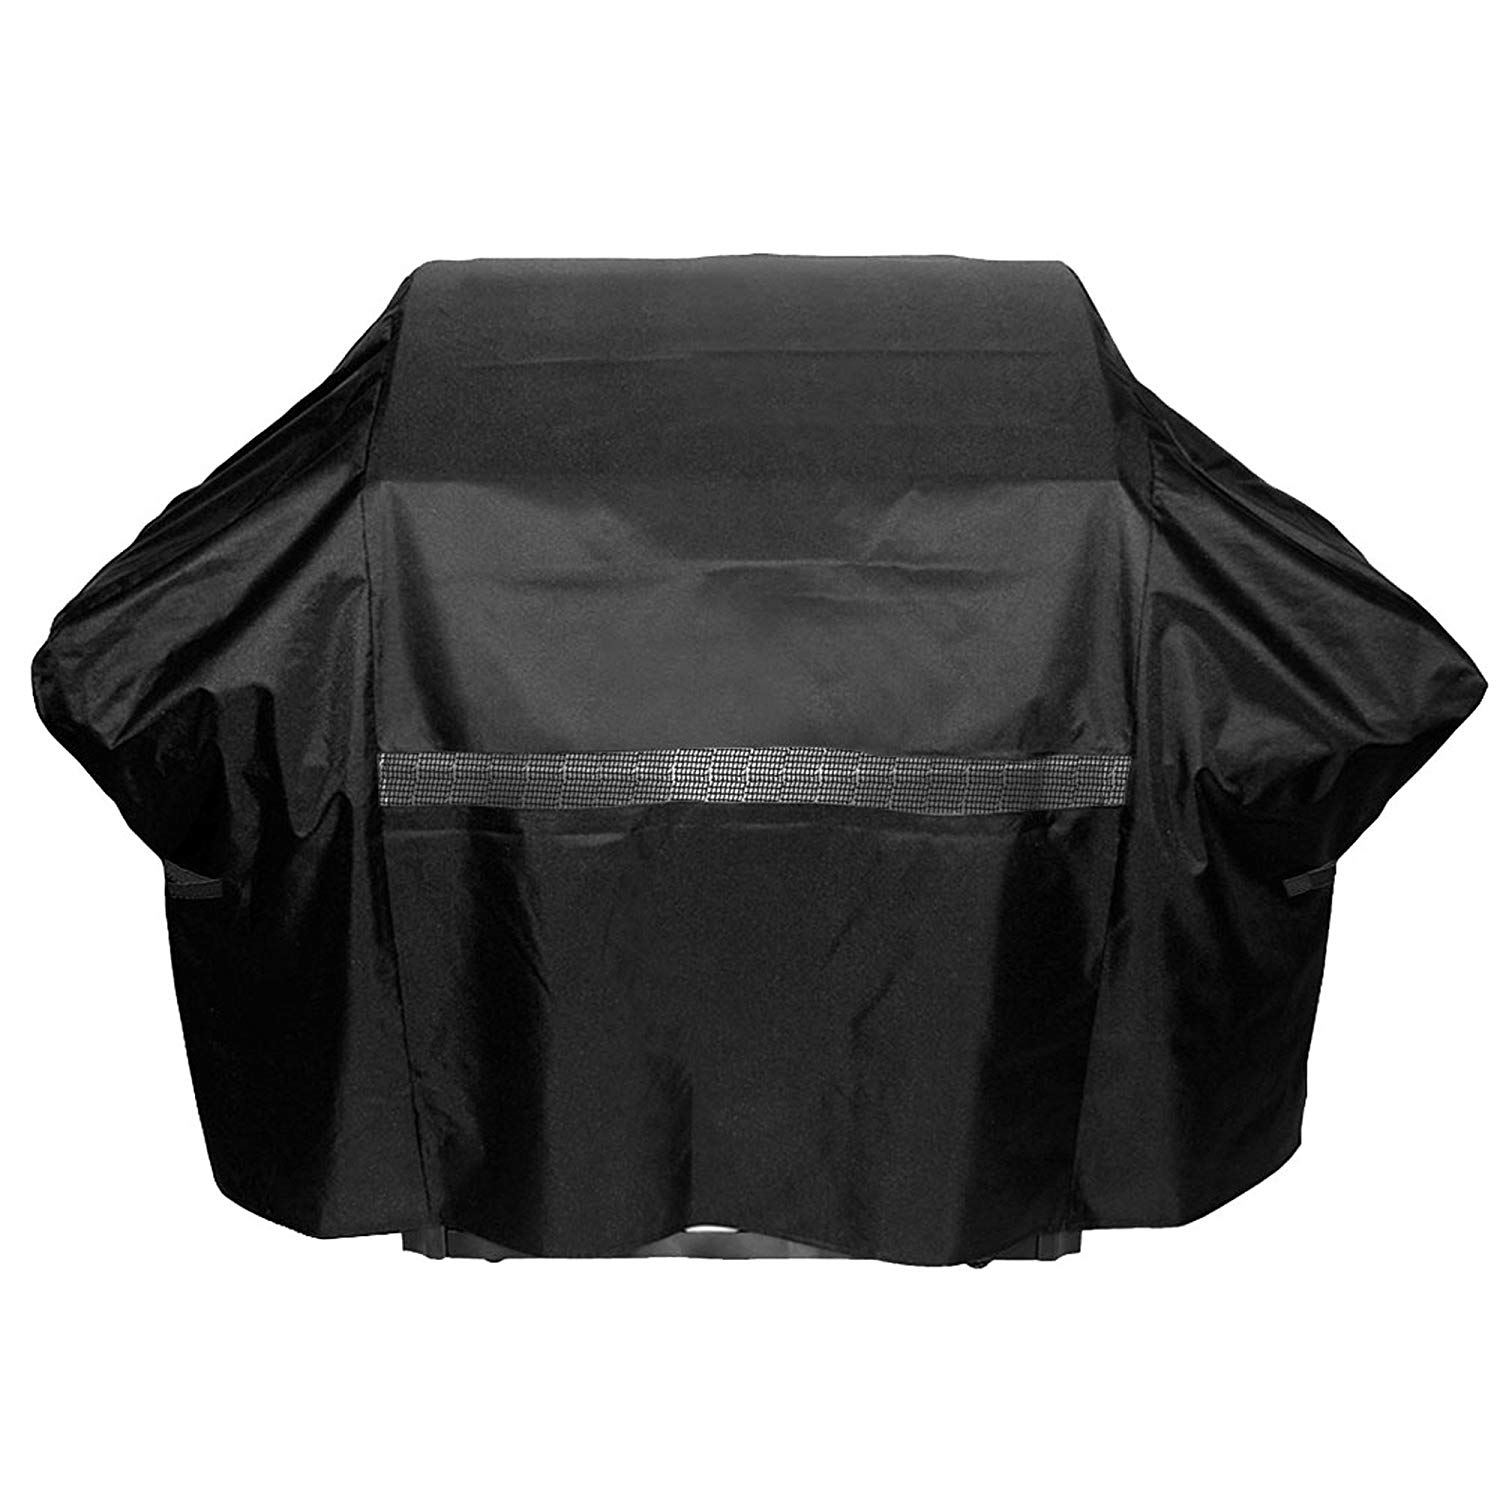 1 Piece Black Outdoor Camping Grill Cover Waterproof 43 Inch, Water Resistant BBQ Cover Small Durable Patio Barbecue Cover Heavy Duty Material Mesh Vent On The Front Closure Strips, Fabric